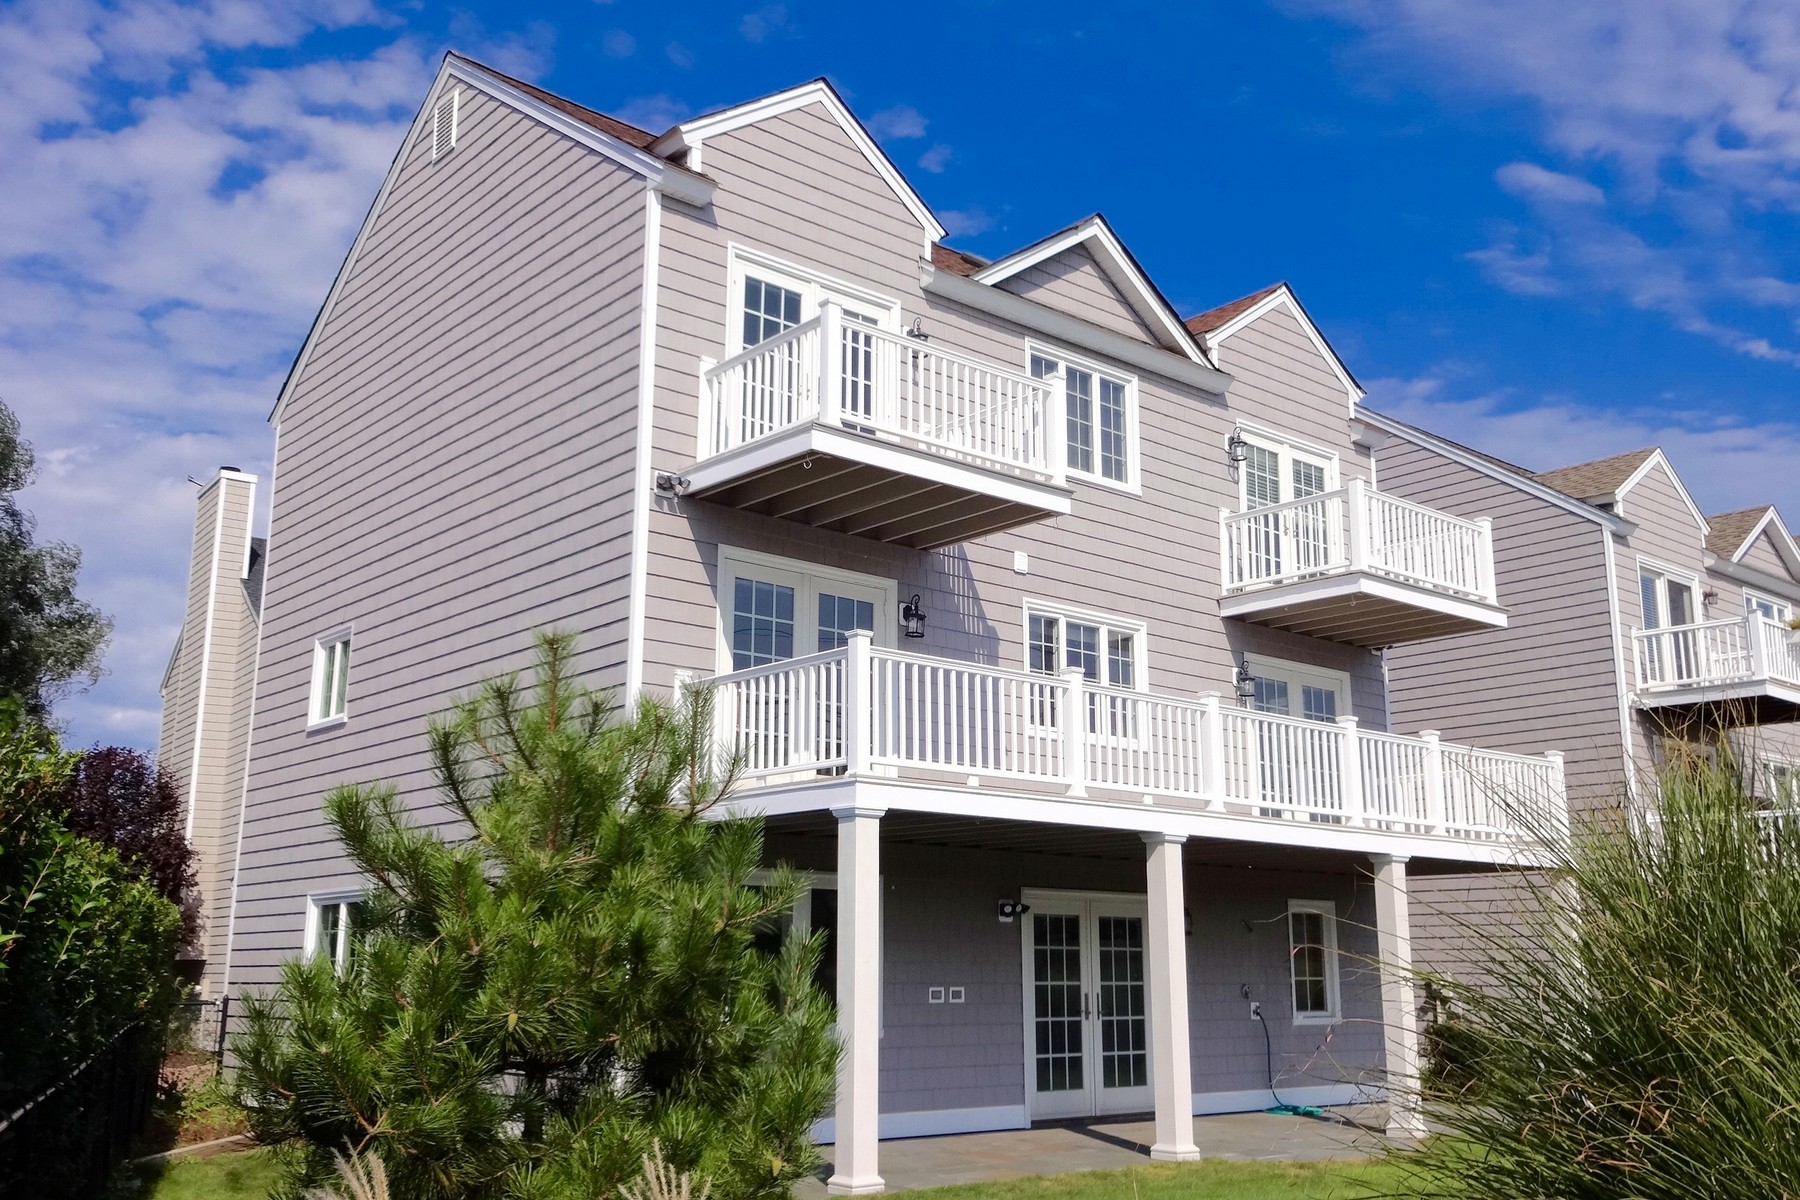 Single Family Home for Sale at Fairfield Beach Townhouse 672 Fairfield Beach Road Fairfield, Connecticut, 06824 United States